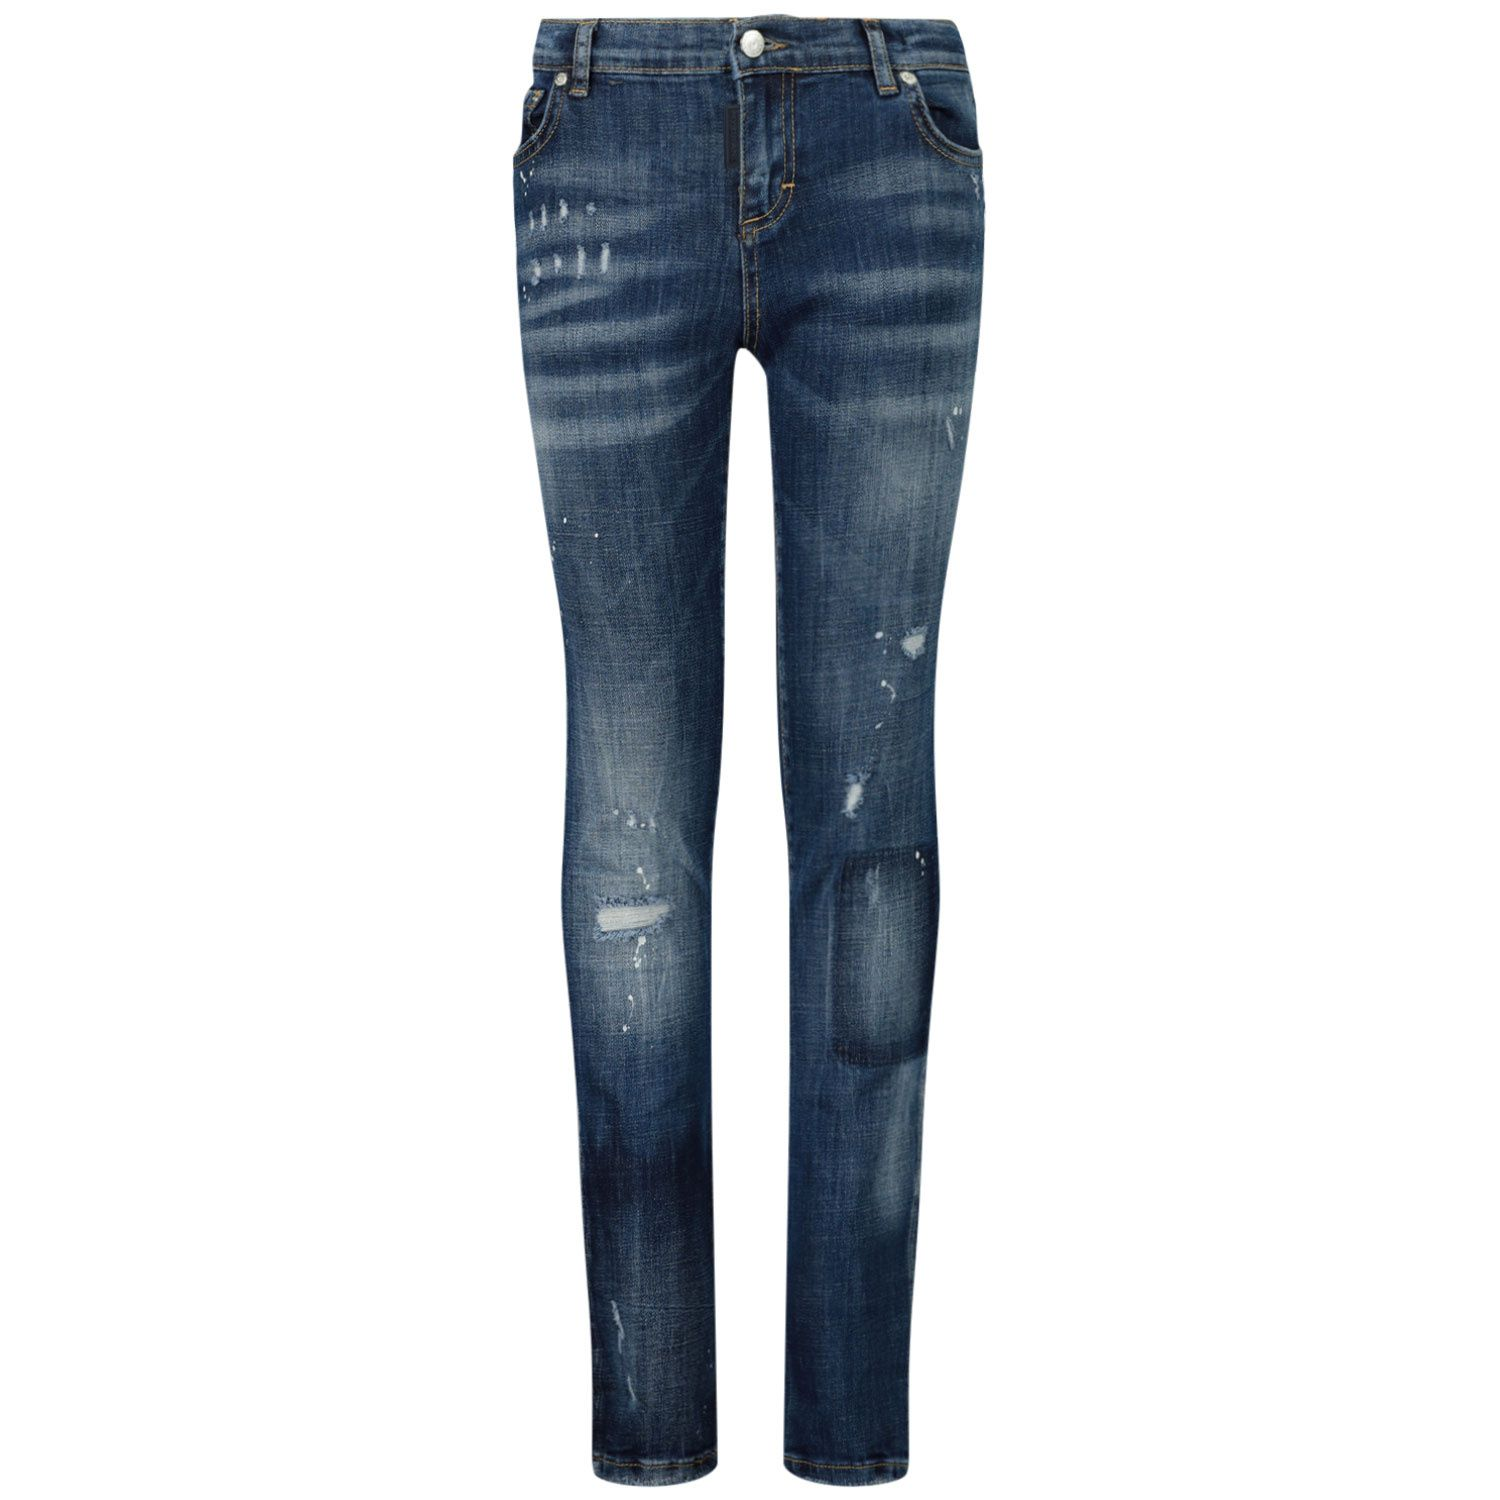 Picture of My Brand 3Y20003B0007 kids jeans jeans